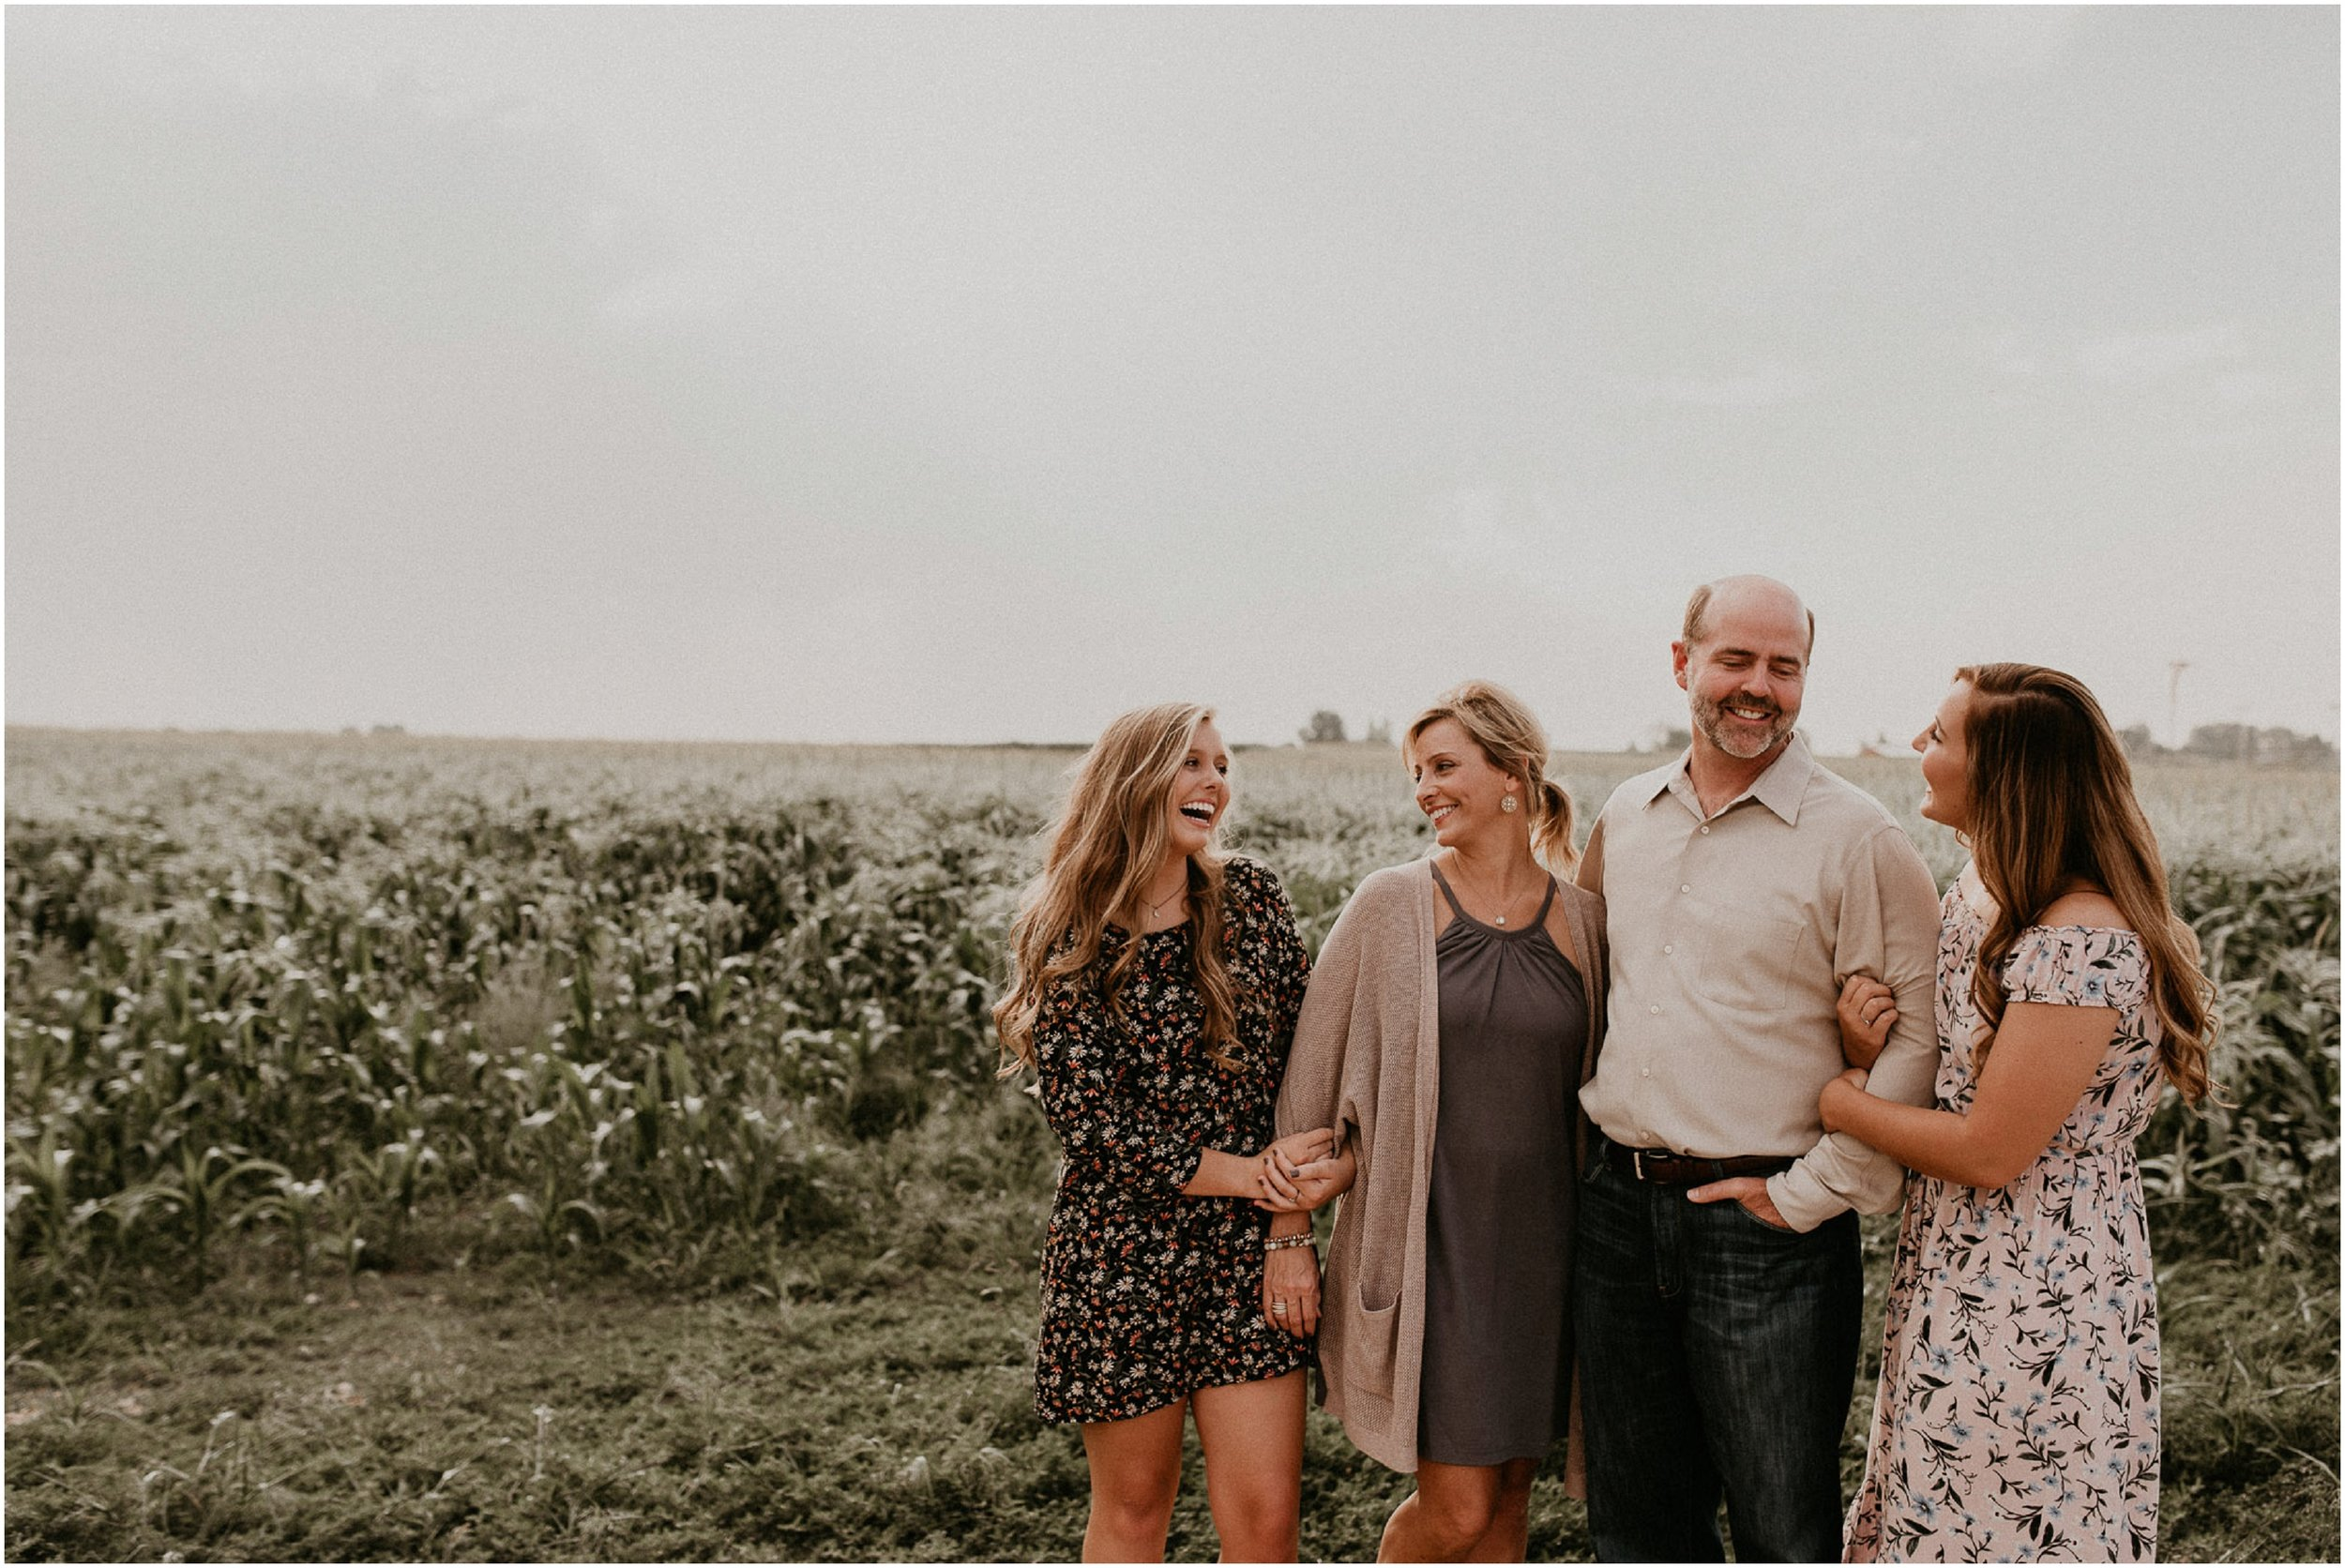 Boise Senior Boudoir Wedding Photographer Makayla Madden Family Pictures Meridian Idaho Linder Farms Corn Field Laughter Candid Family Moments